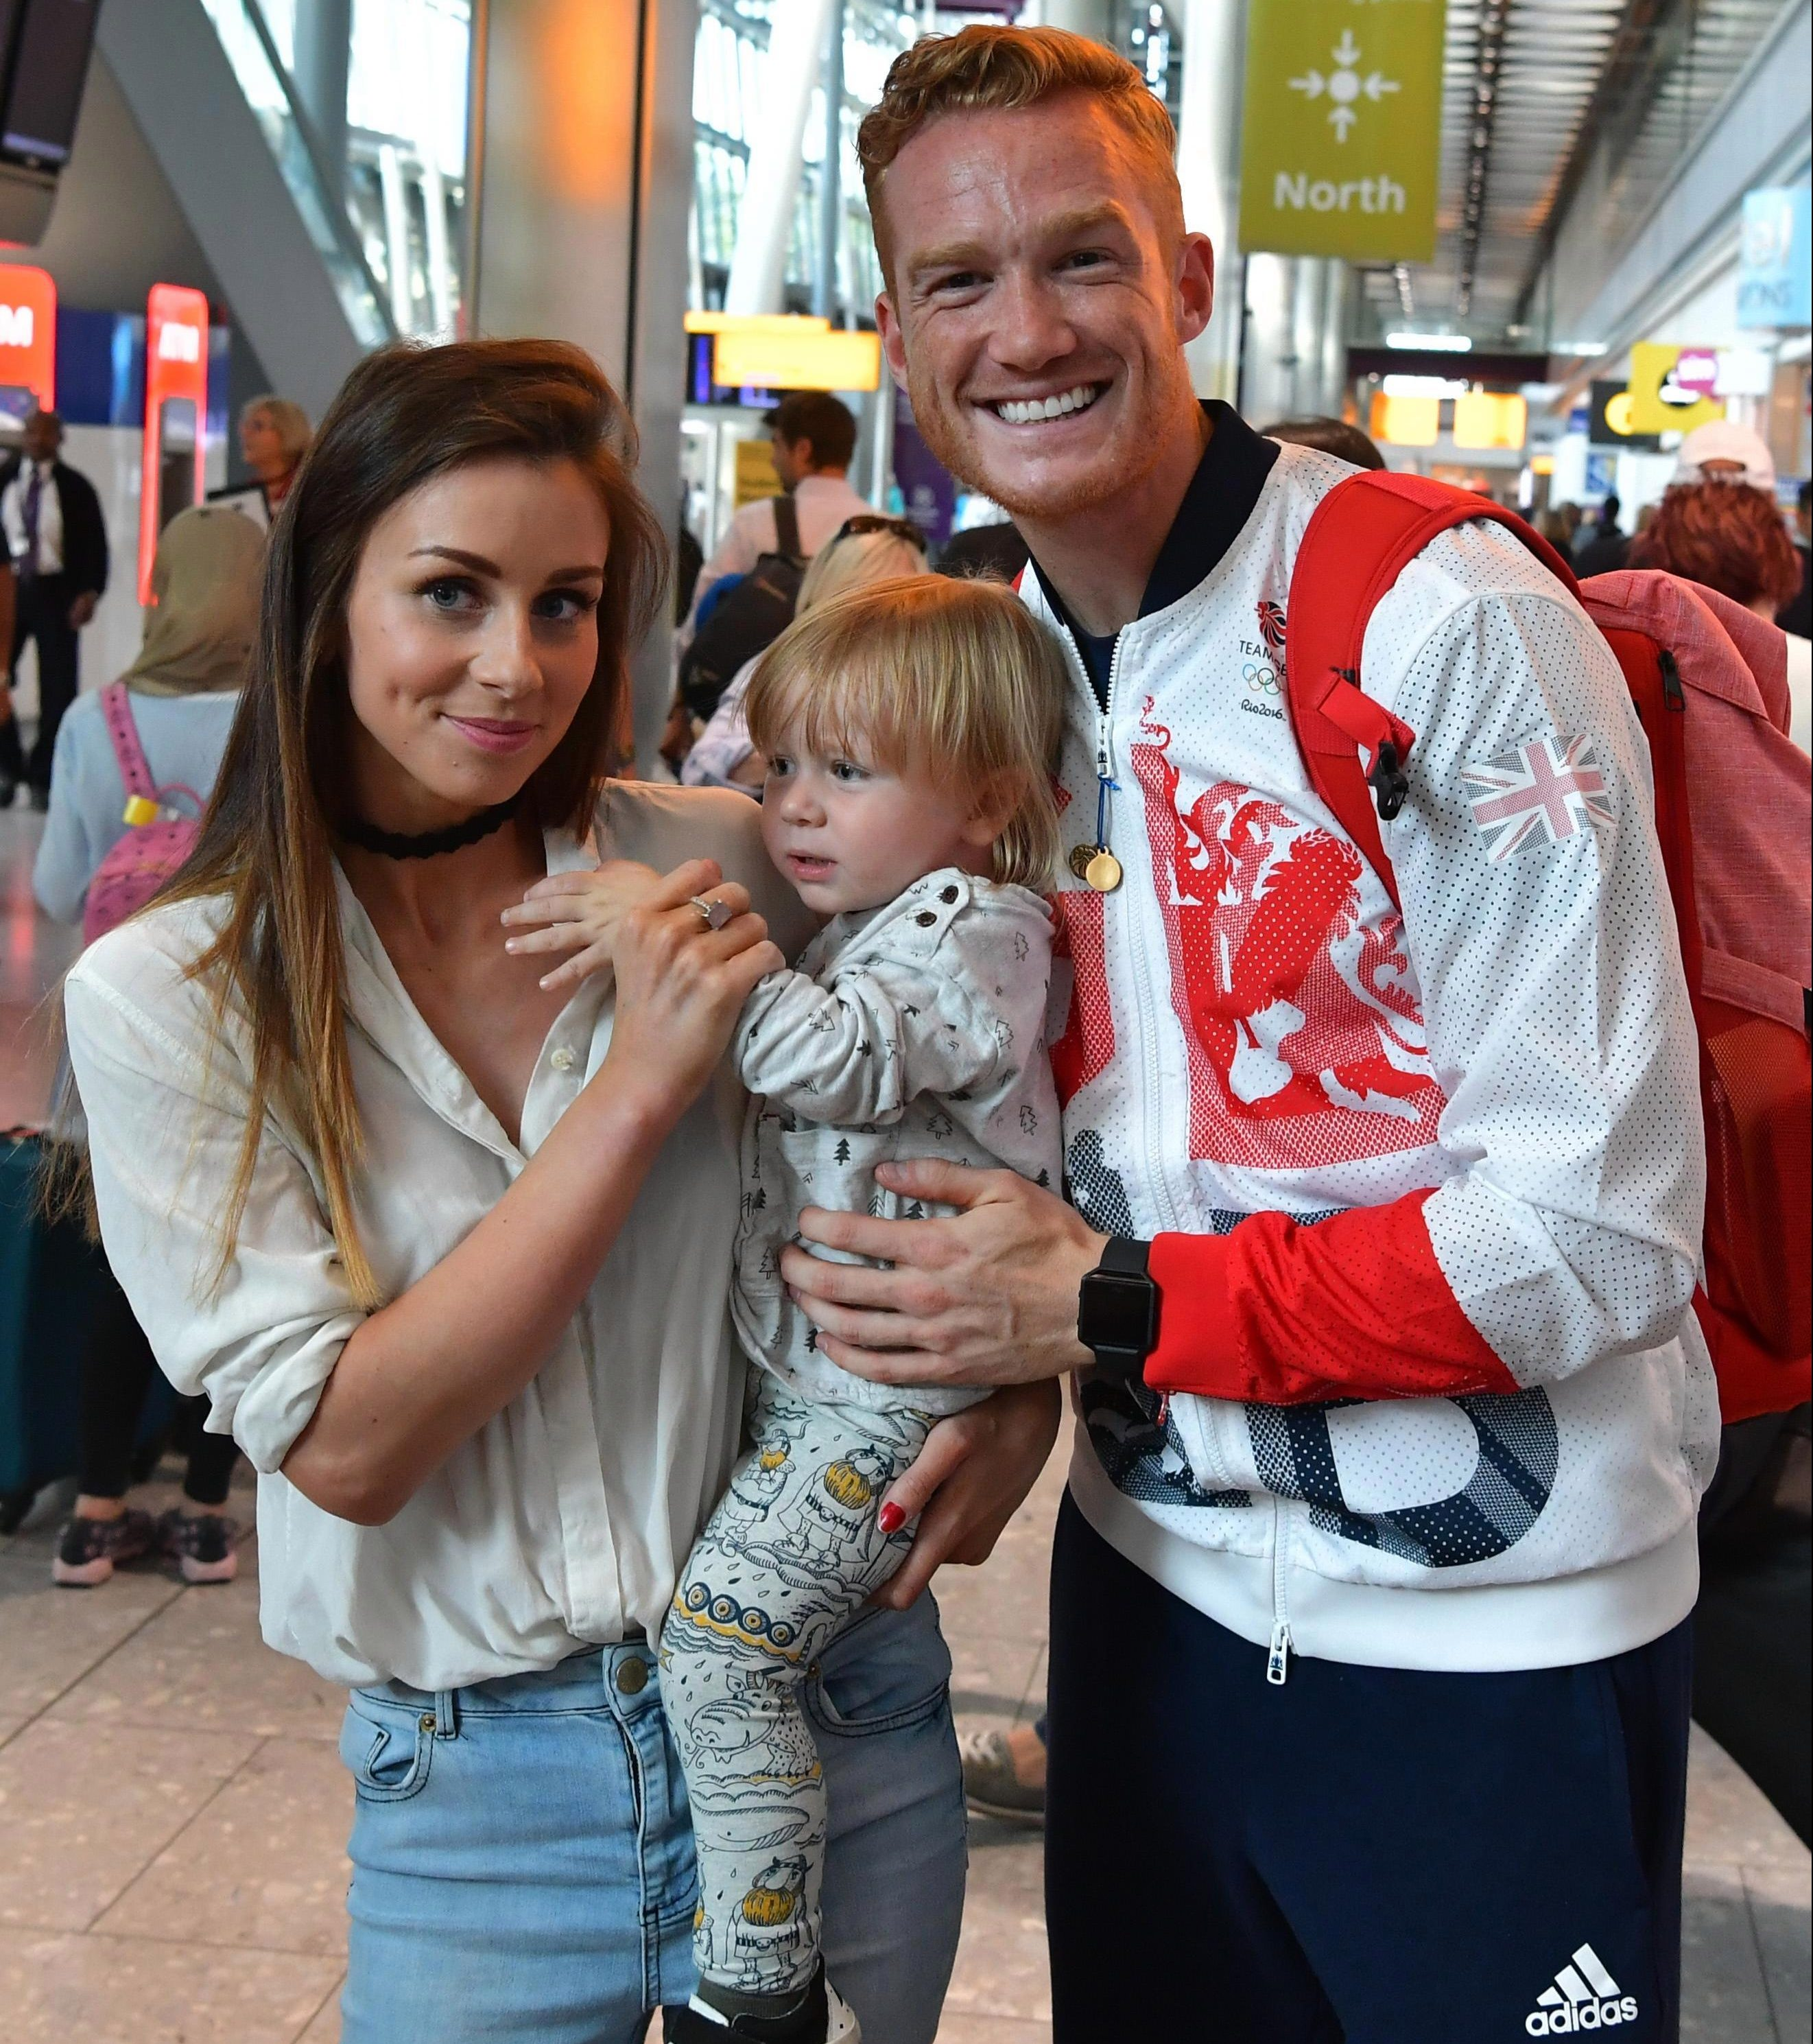 Greg Rutherford has been in such pain at times that he cannot even play with his children